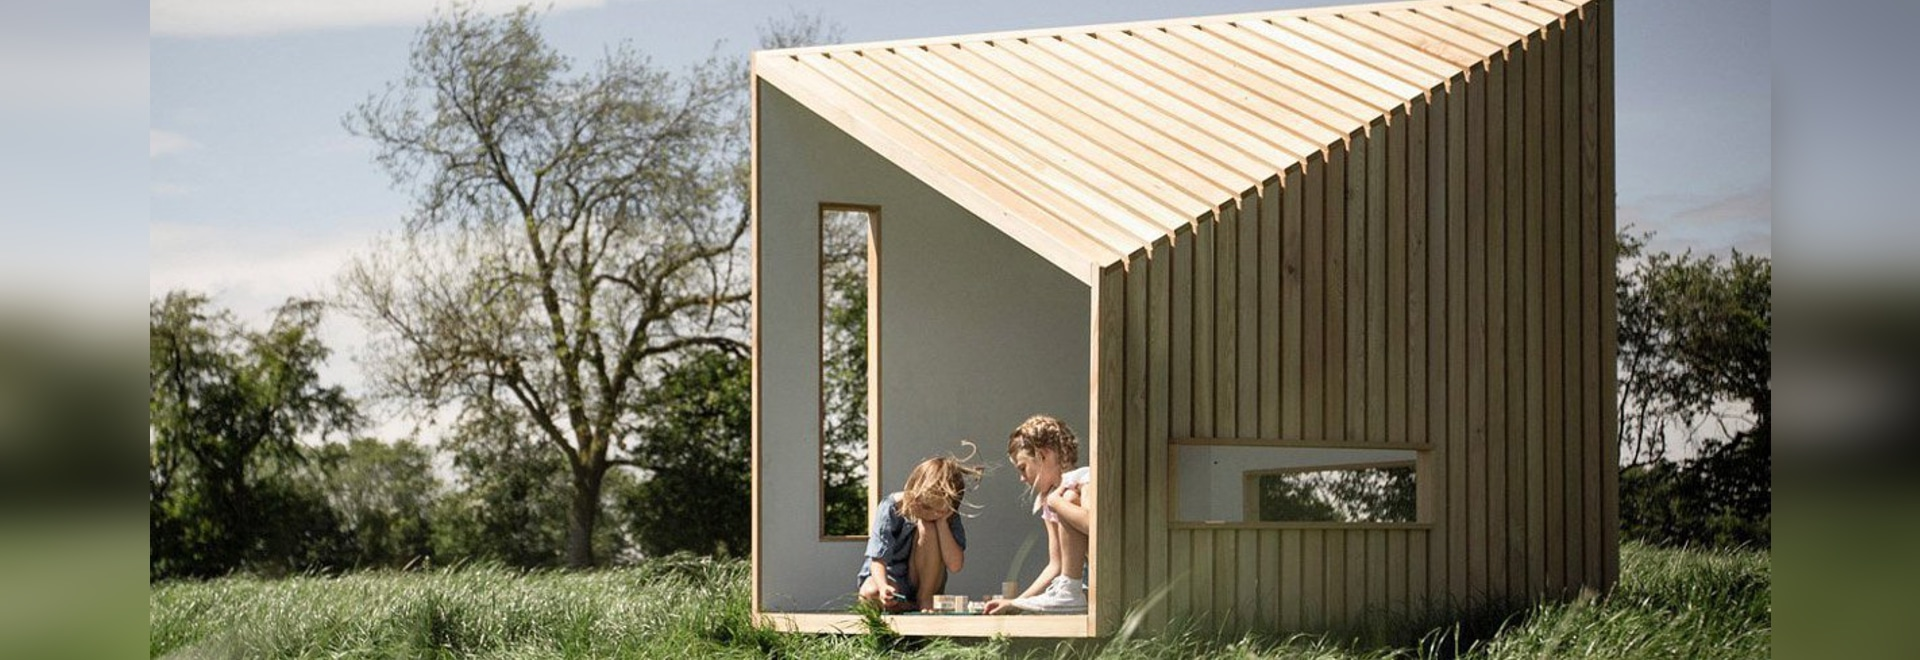 This Outdoor Playhouse For Kids Was Inspired By Modern Scandinavian Cabin Design